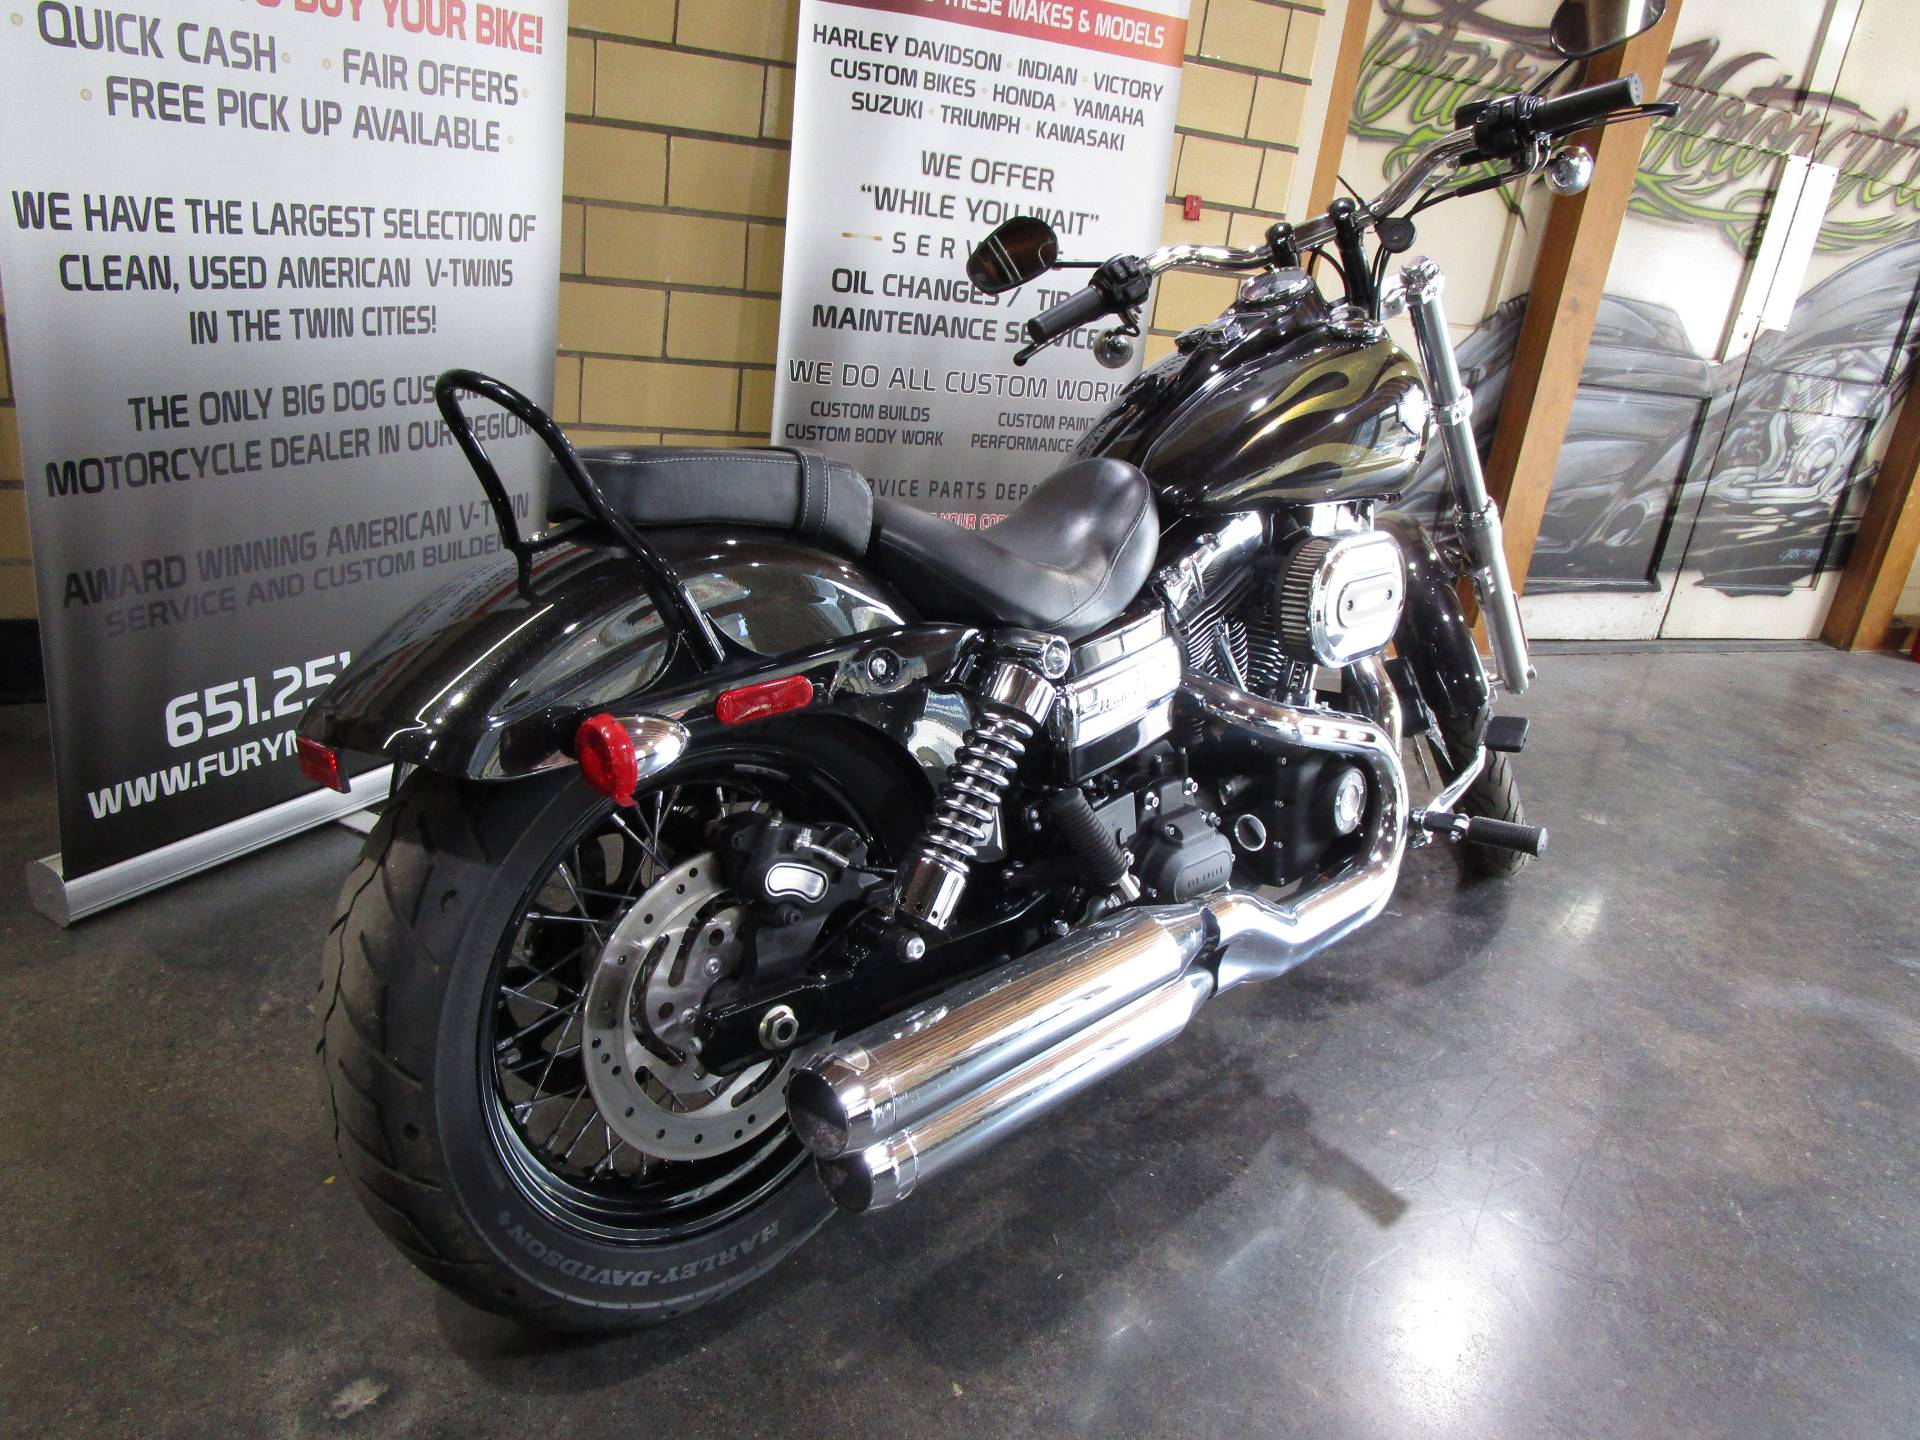 2017 Harley-Davidson Wide Glide in South Saint Paul, Minnesota - Photo 7